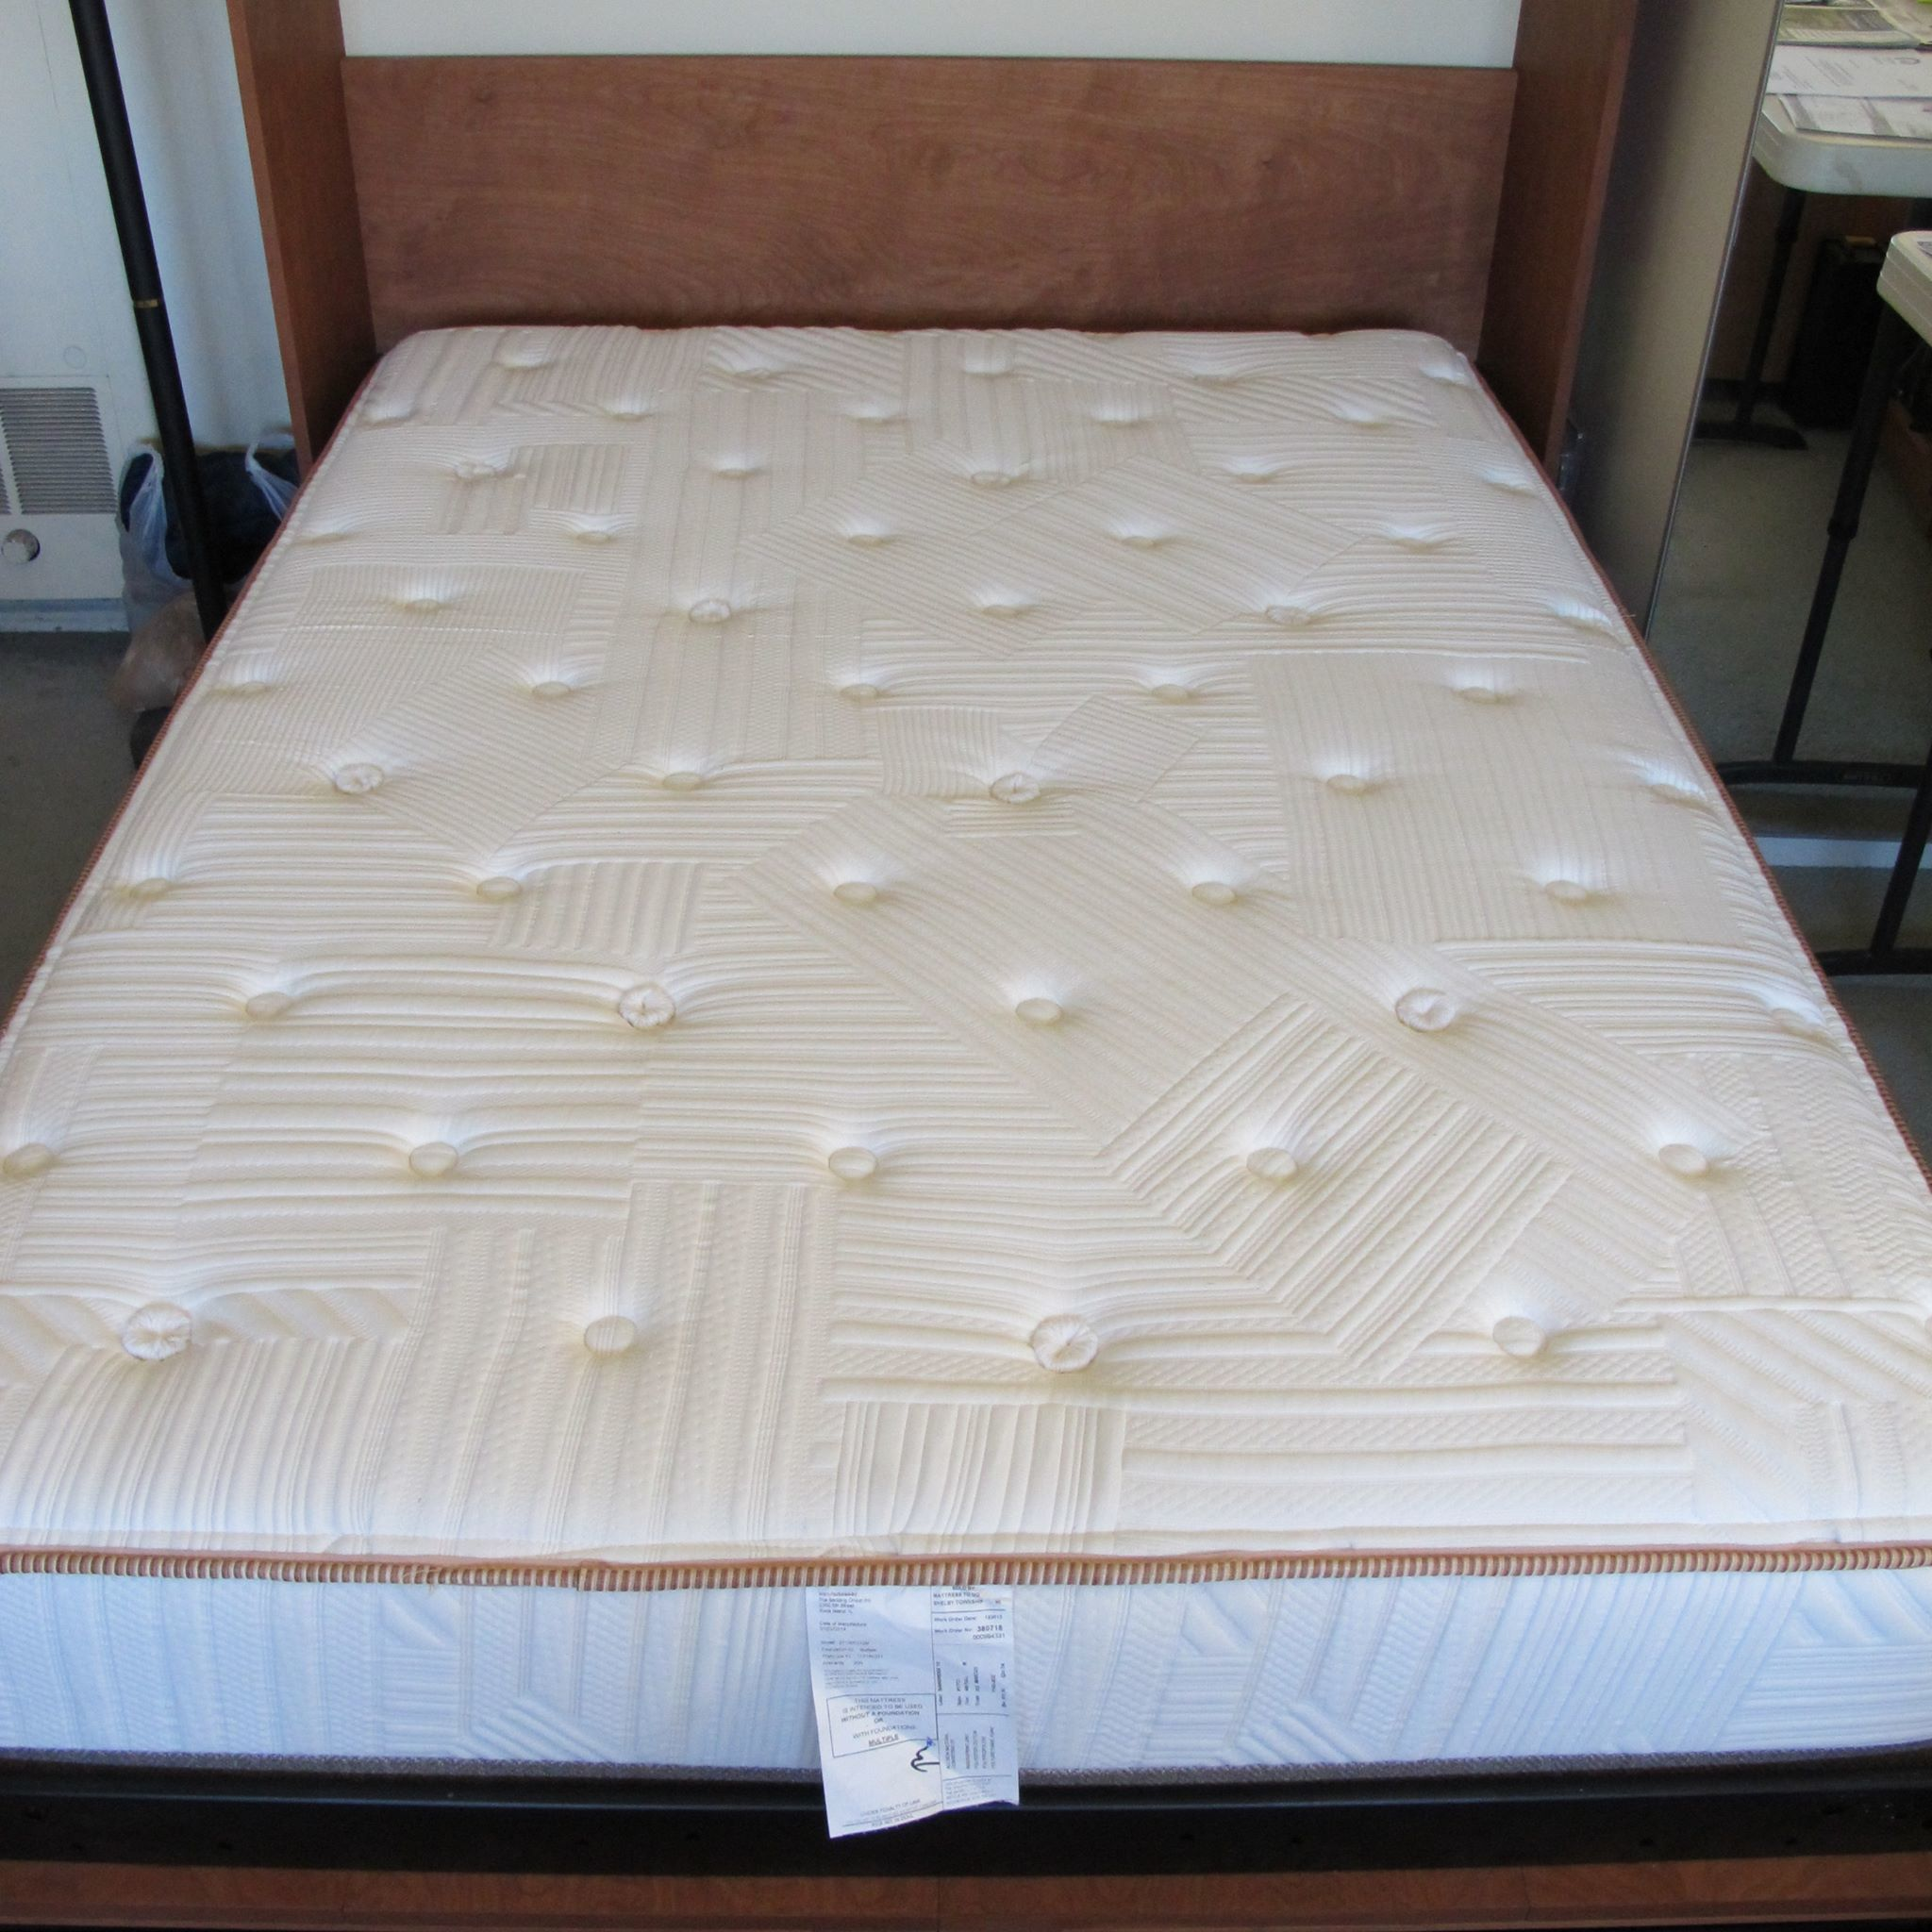 Mattress To Go – Natural Talalay Latex Mattress And Latex Mattress Topper Store In Shelby Township Michigan